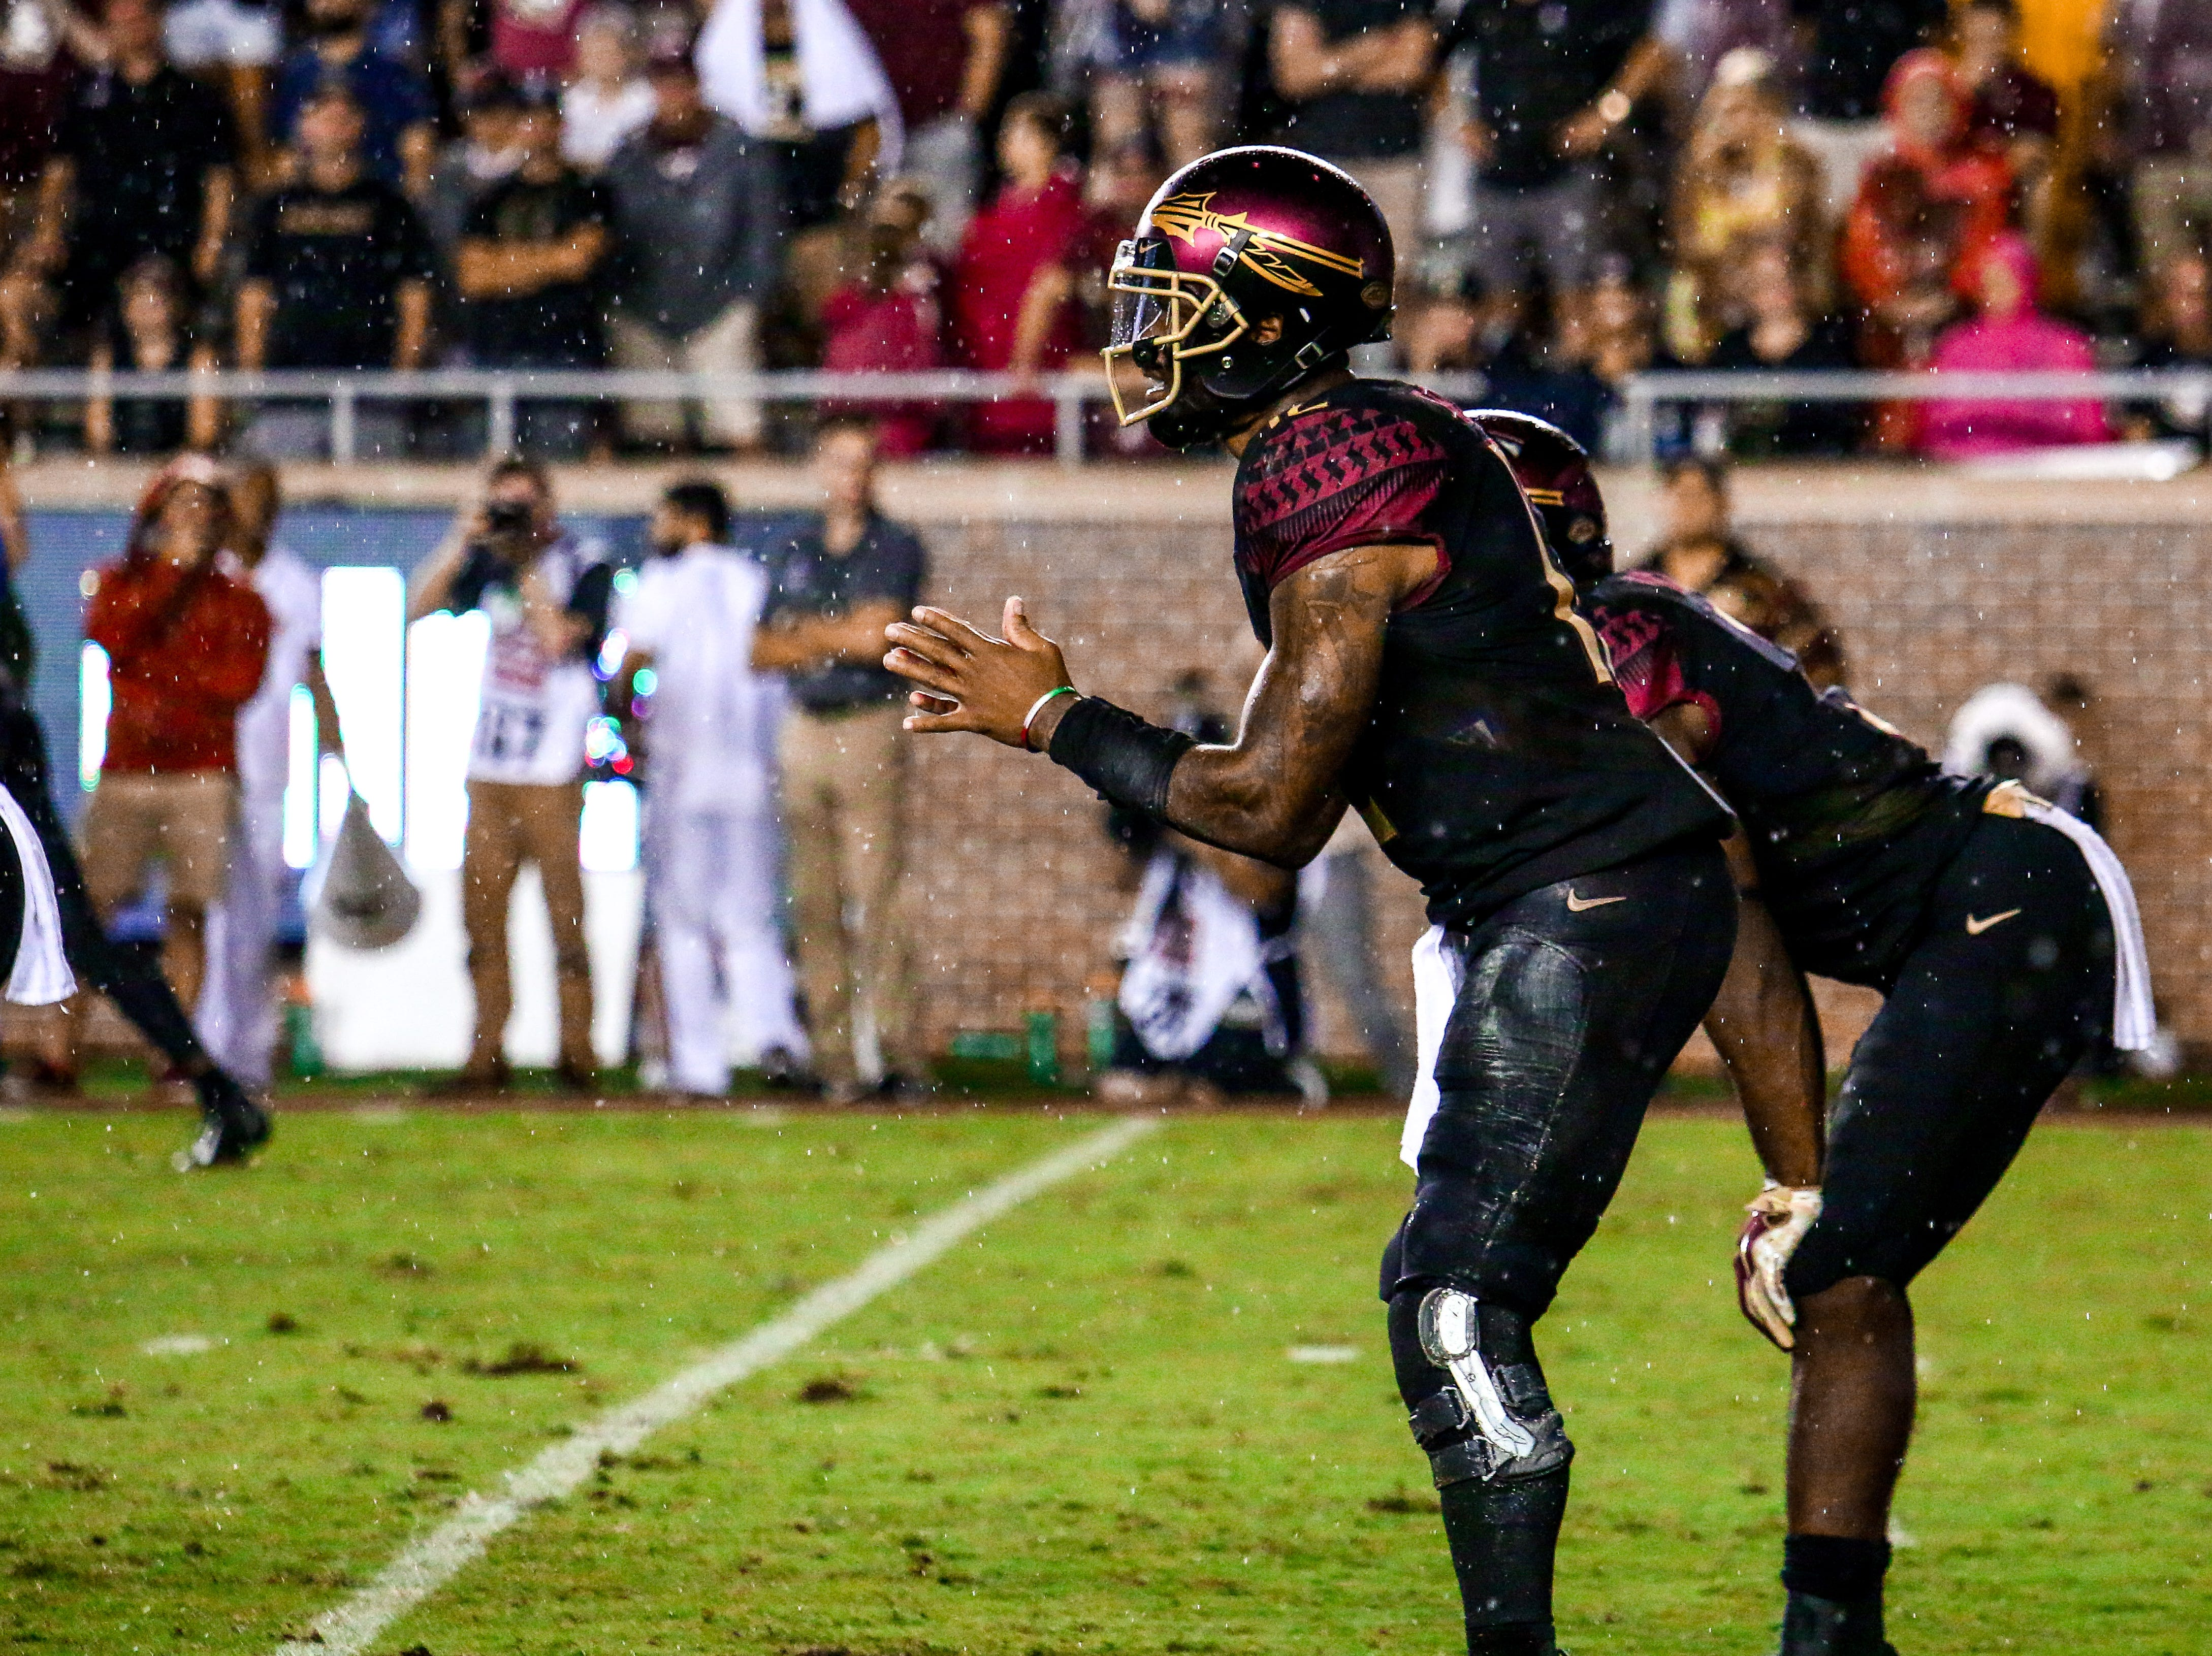 Deondre Francois (12) and the FSU Offense had a forgettable game against #20 Virginia Tech. Only scoring three points on the night and averaging 6.7 passing yards on Monday, September 3rd at Doak Campbell Stadium.